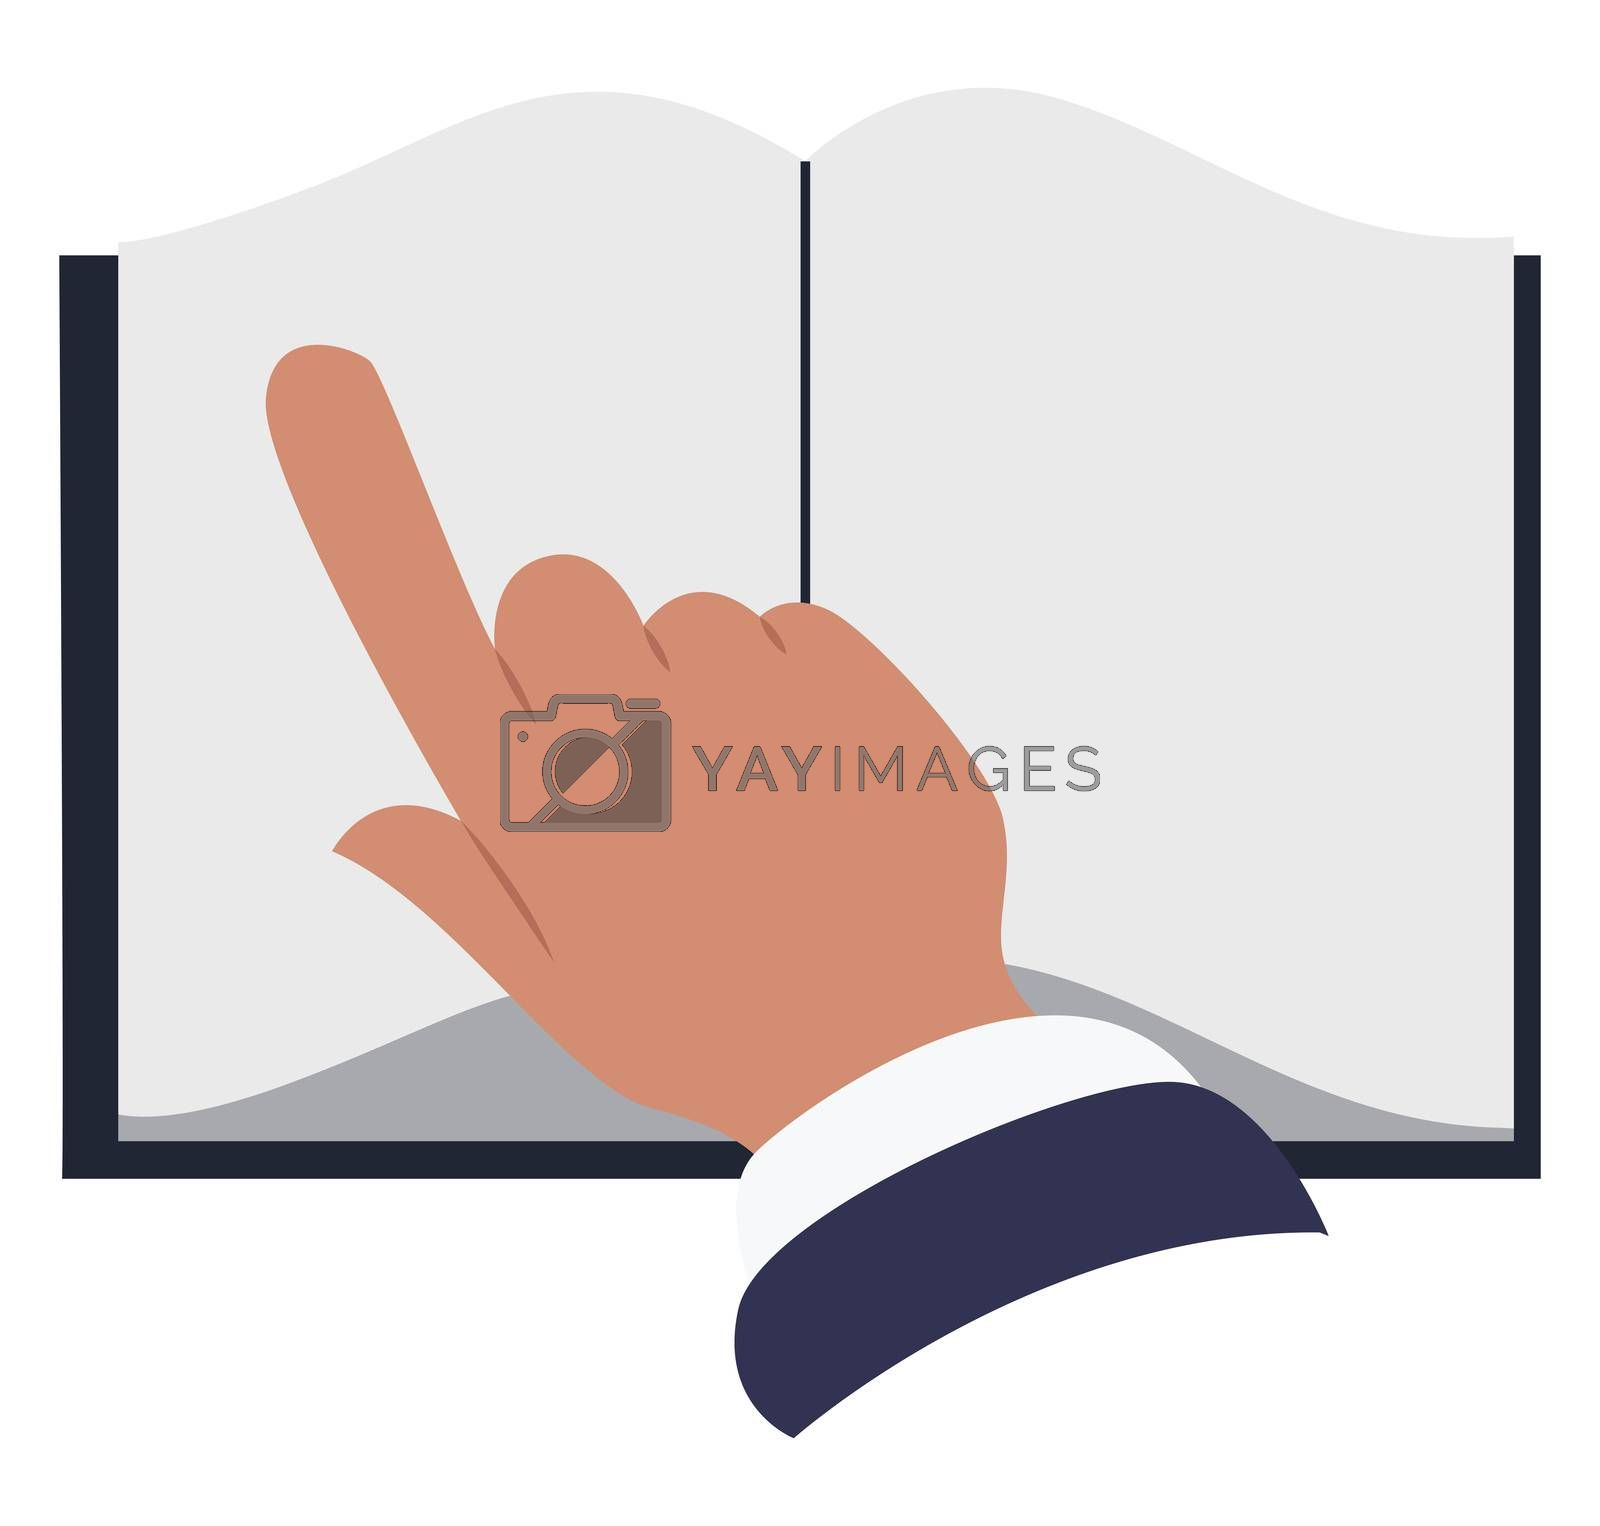 Opened book, illustration, vector on white background